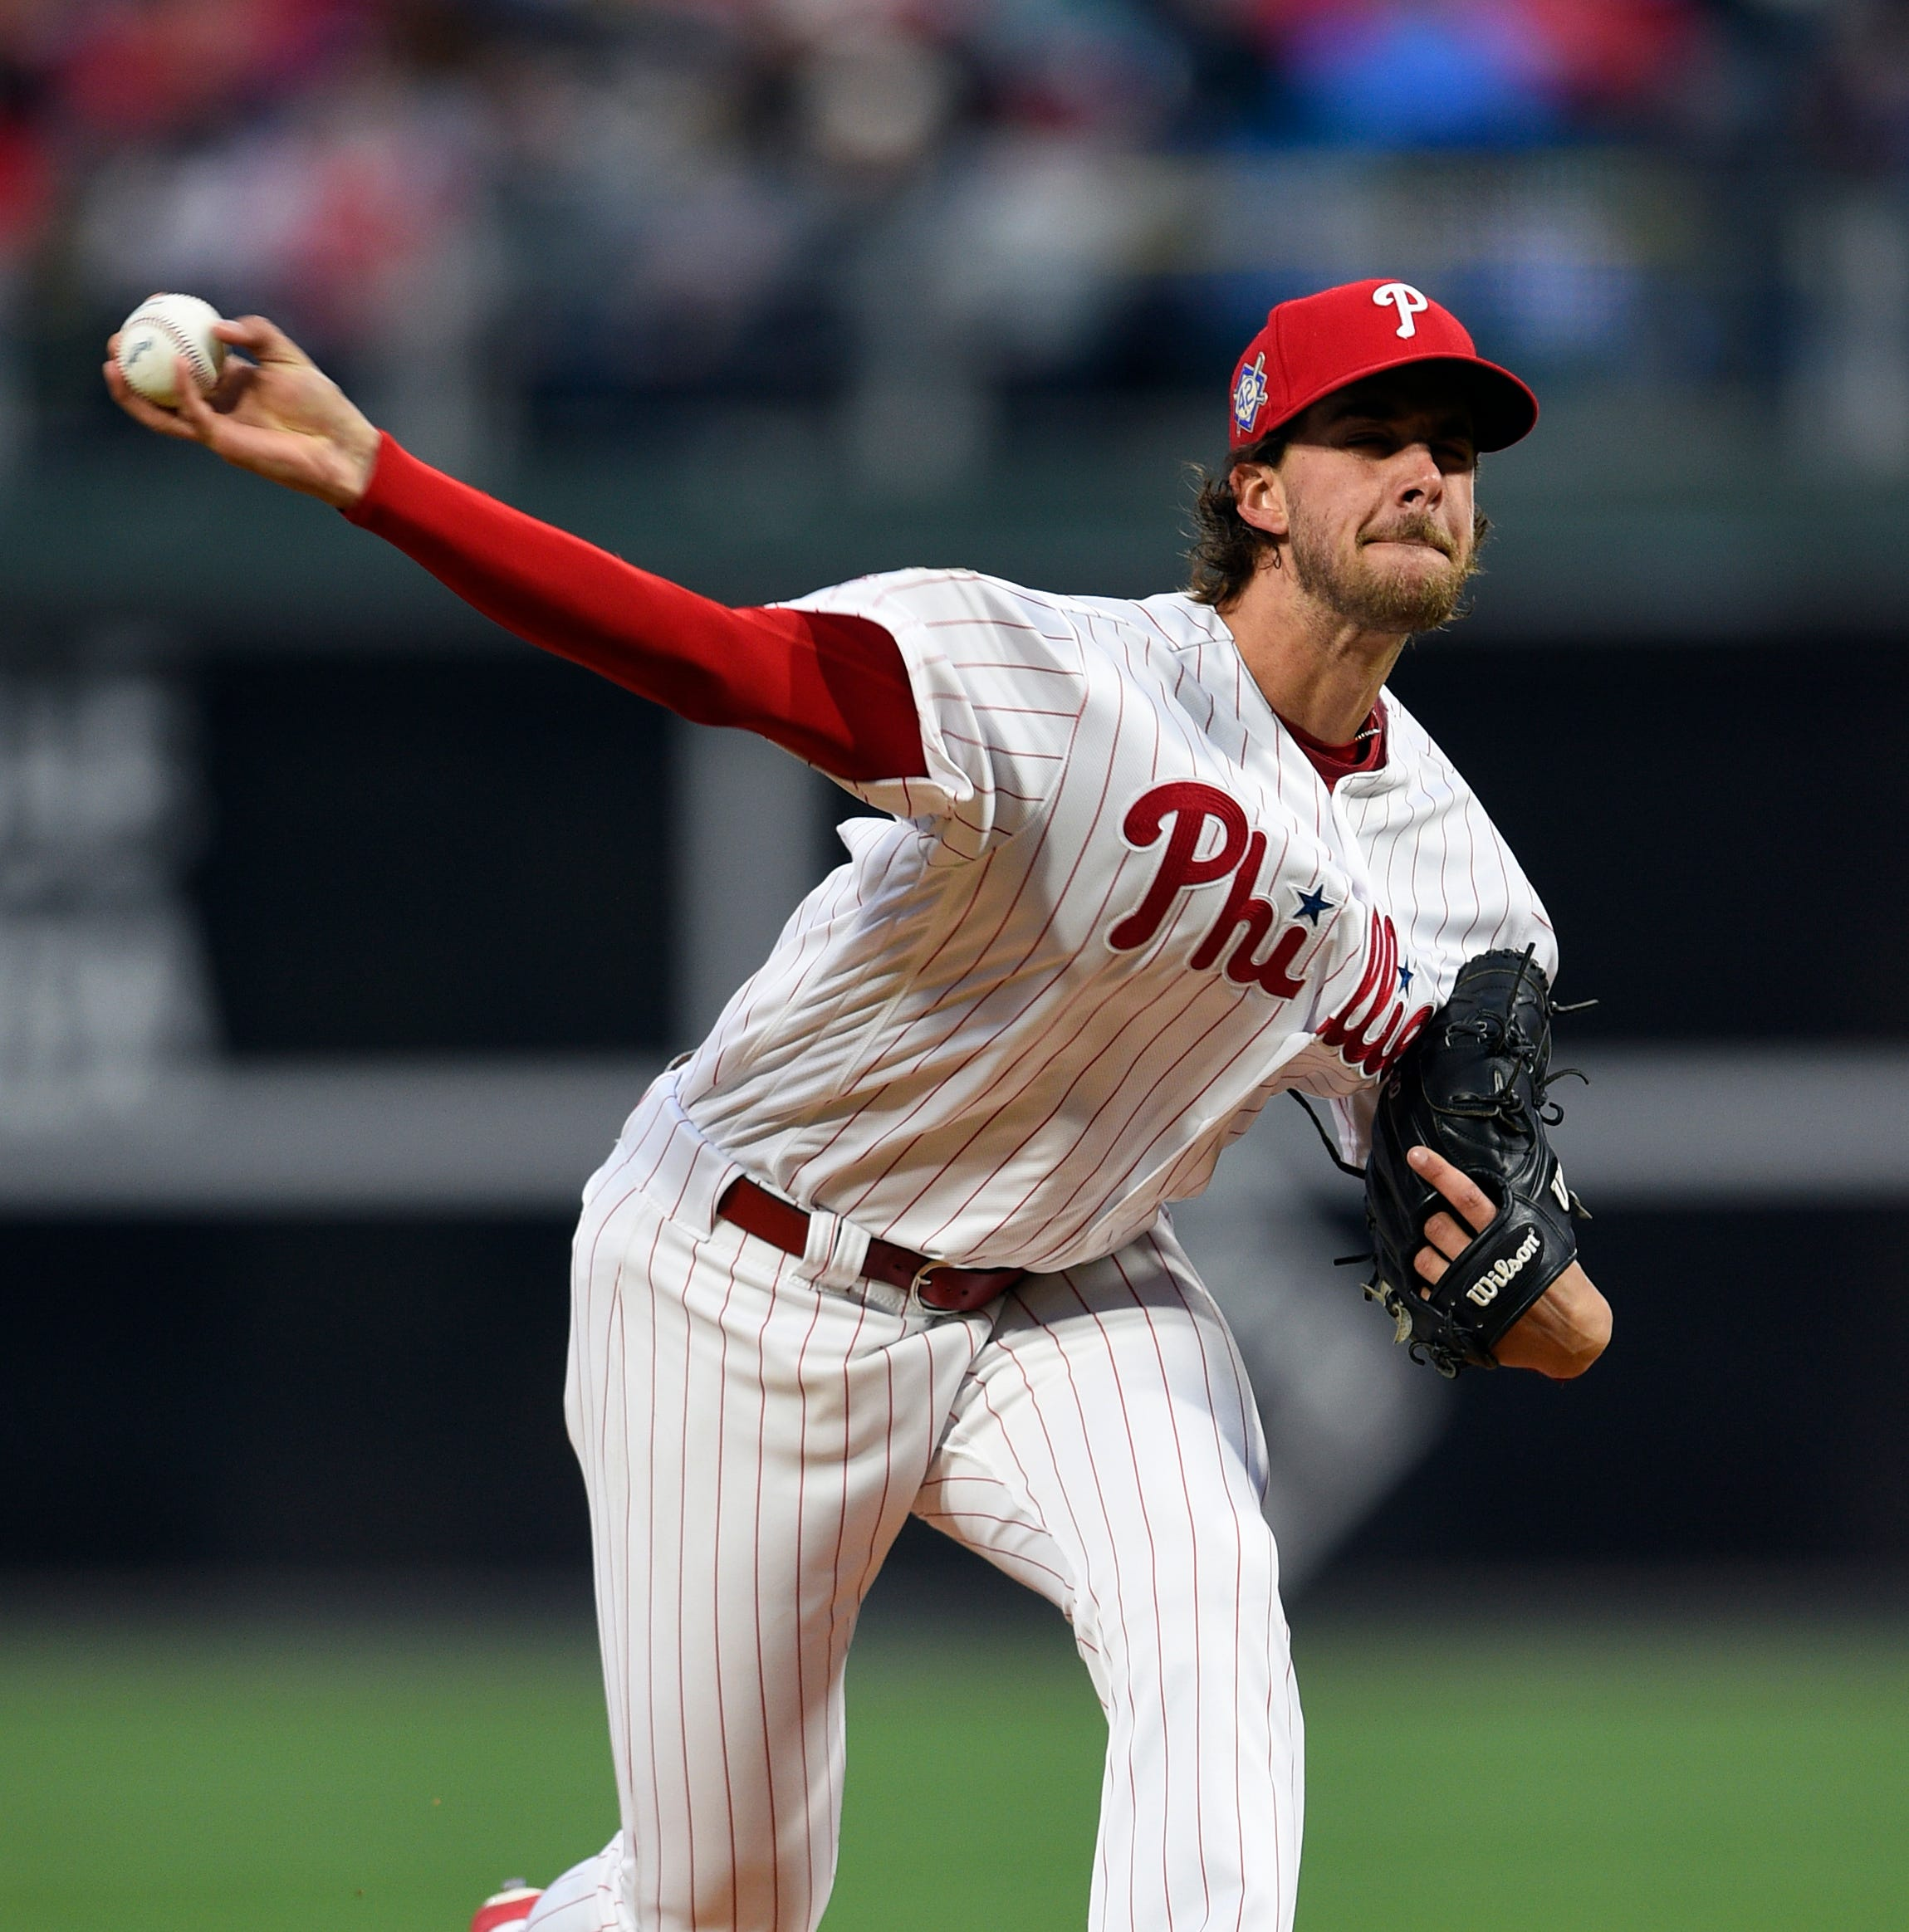 Phillies fall in 11 innings to Mets as Nola struggles